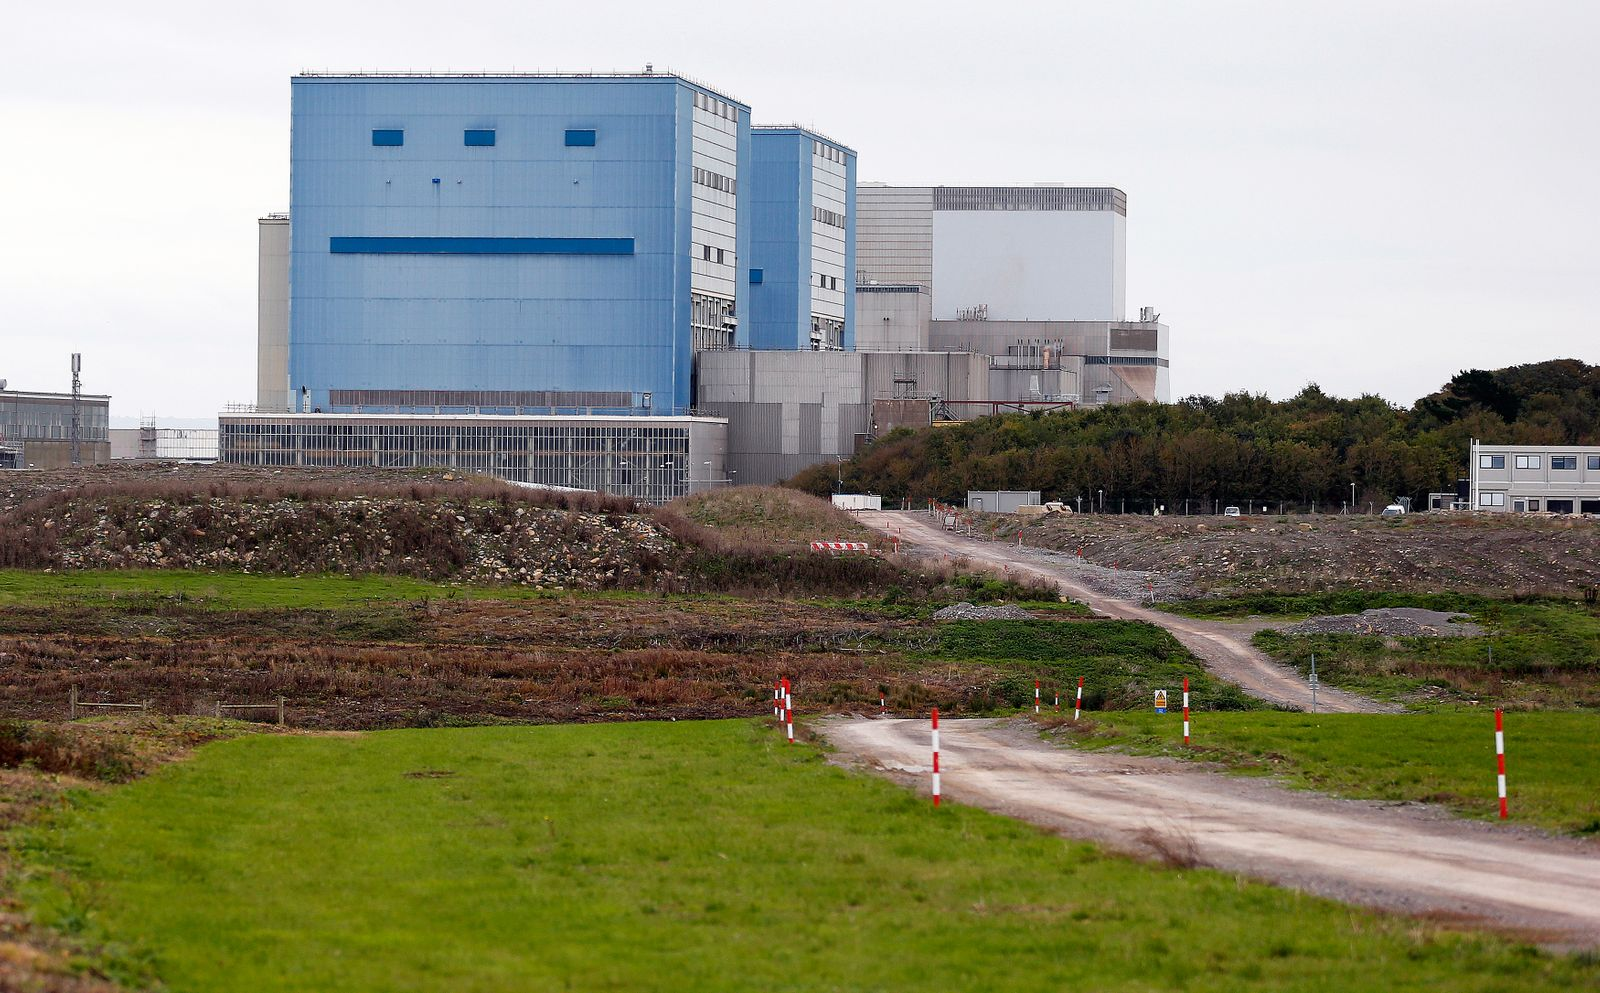 Atomkraftwerk Hinkley Point C